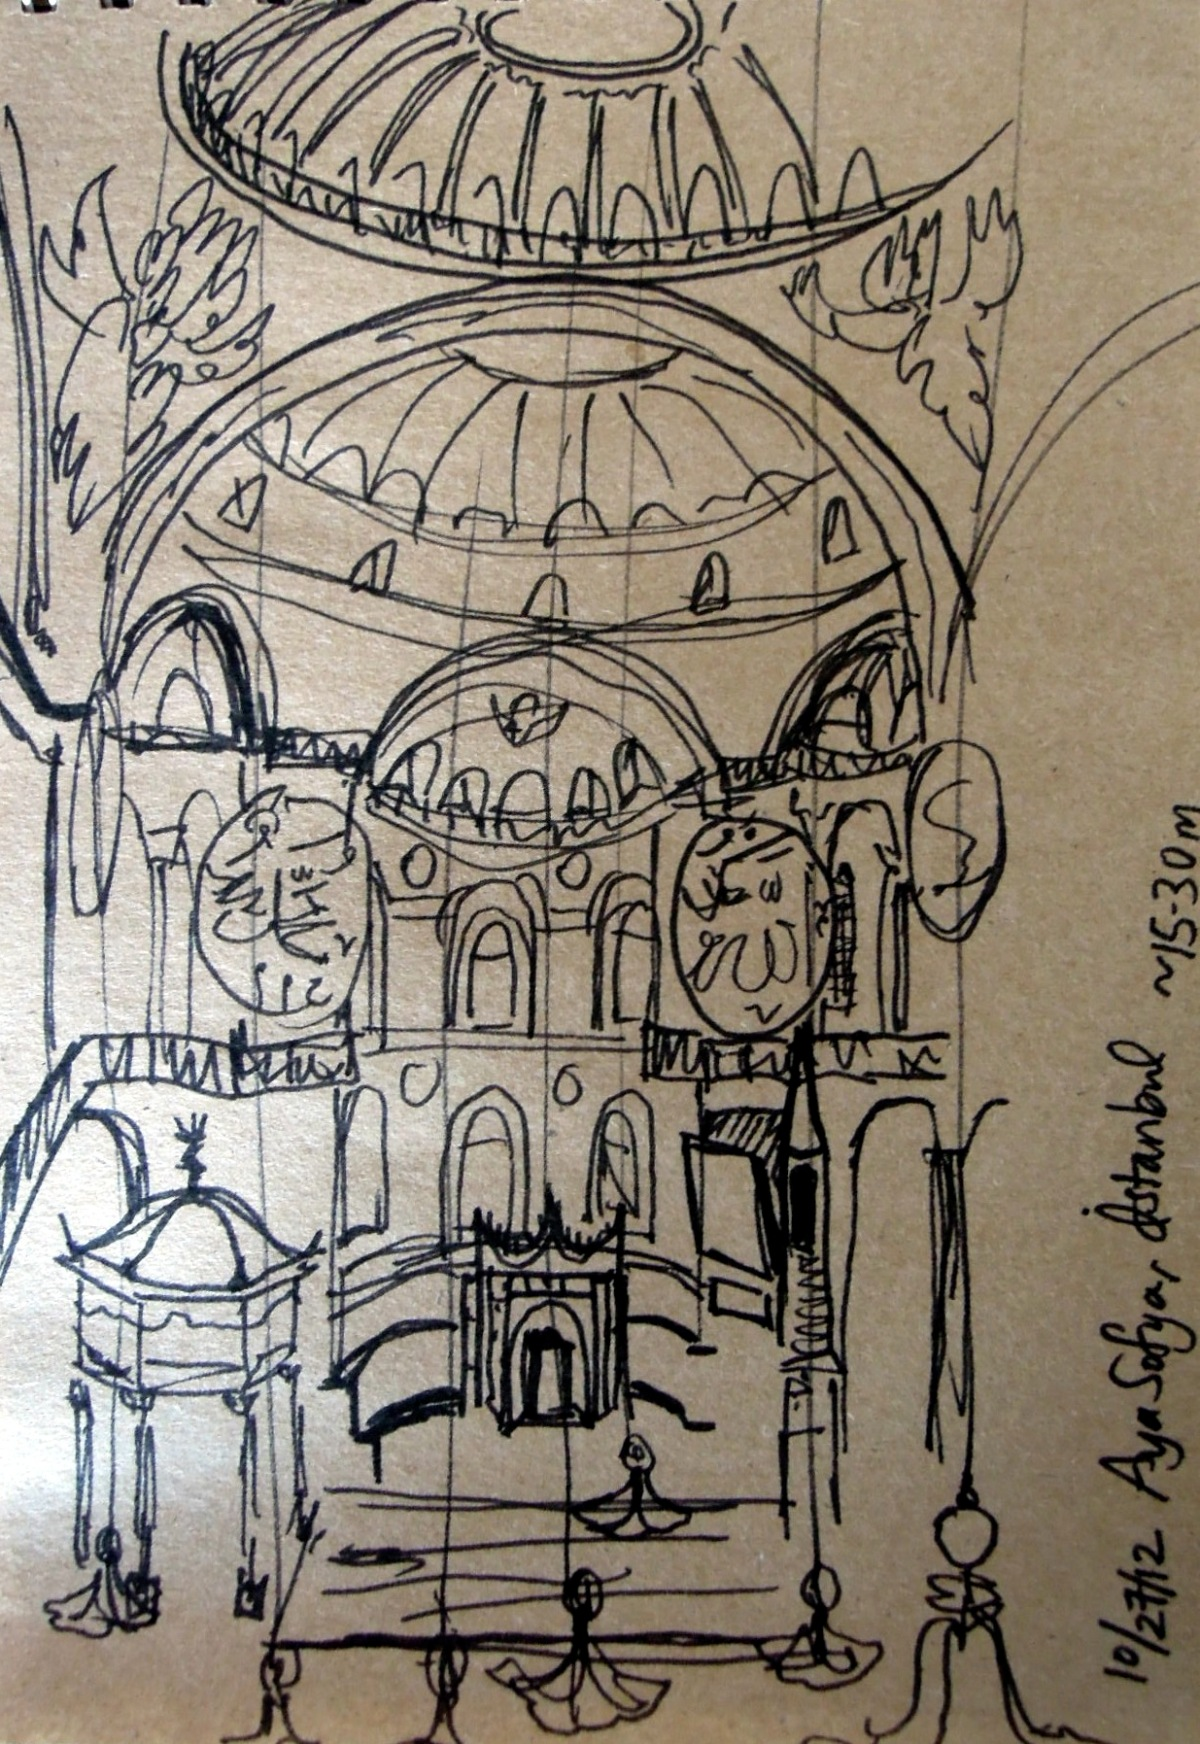 Sketch of the main room of the Aya Sofya